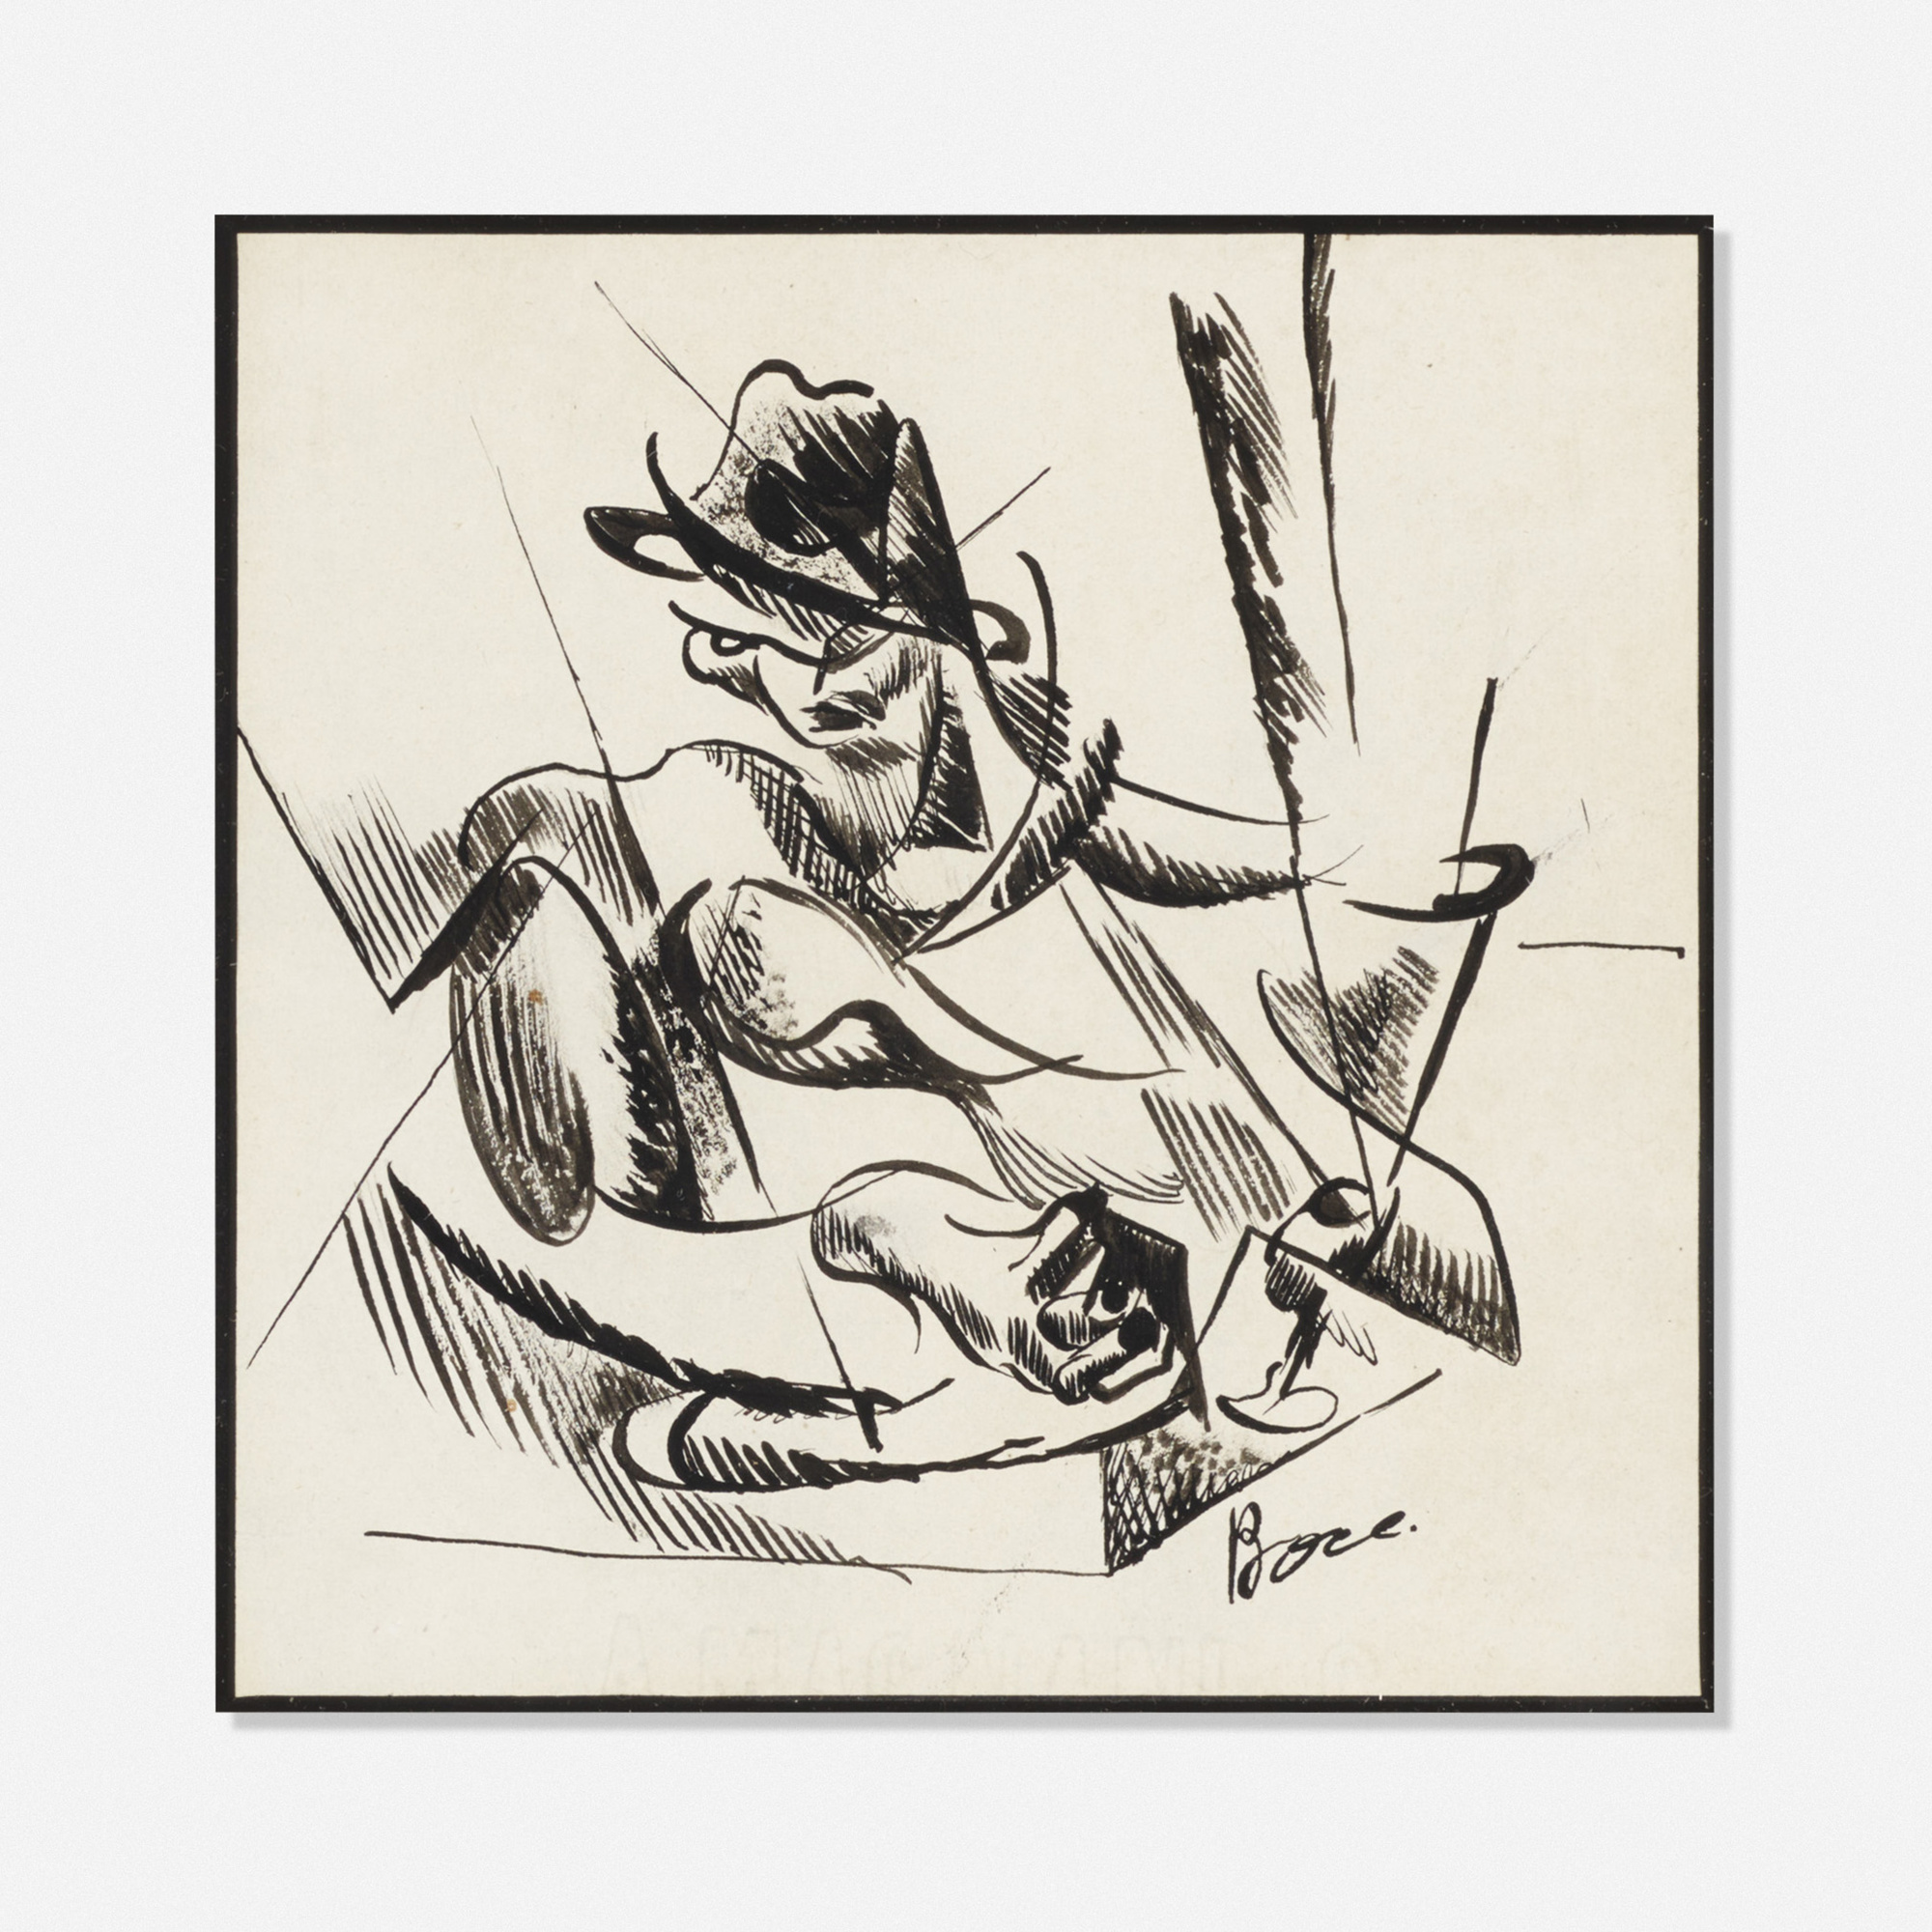 219: School of Umberto Boccioni / Untitled (1 of 1)